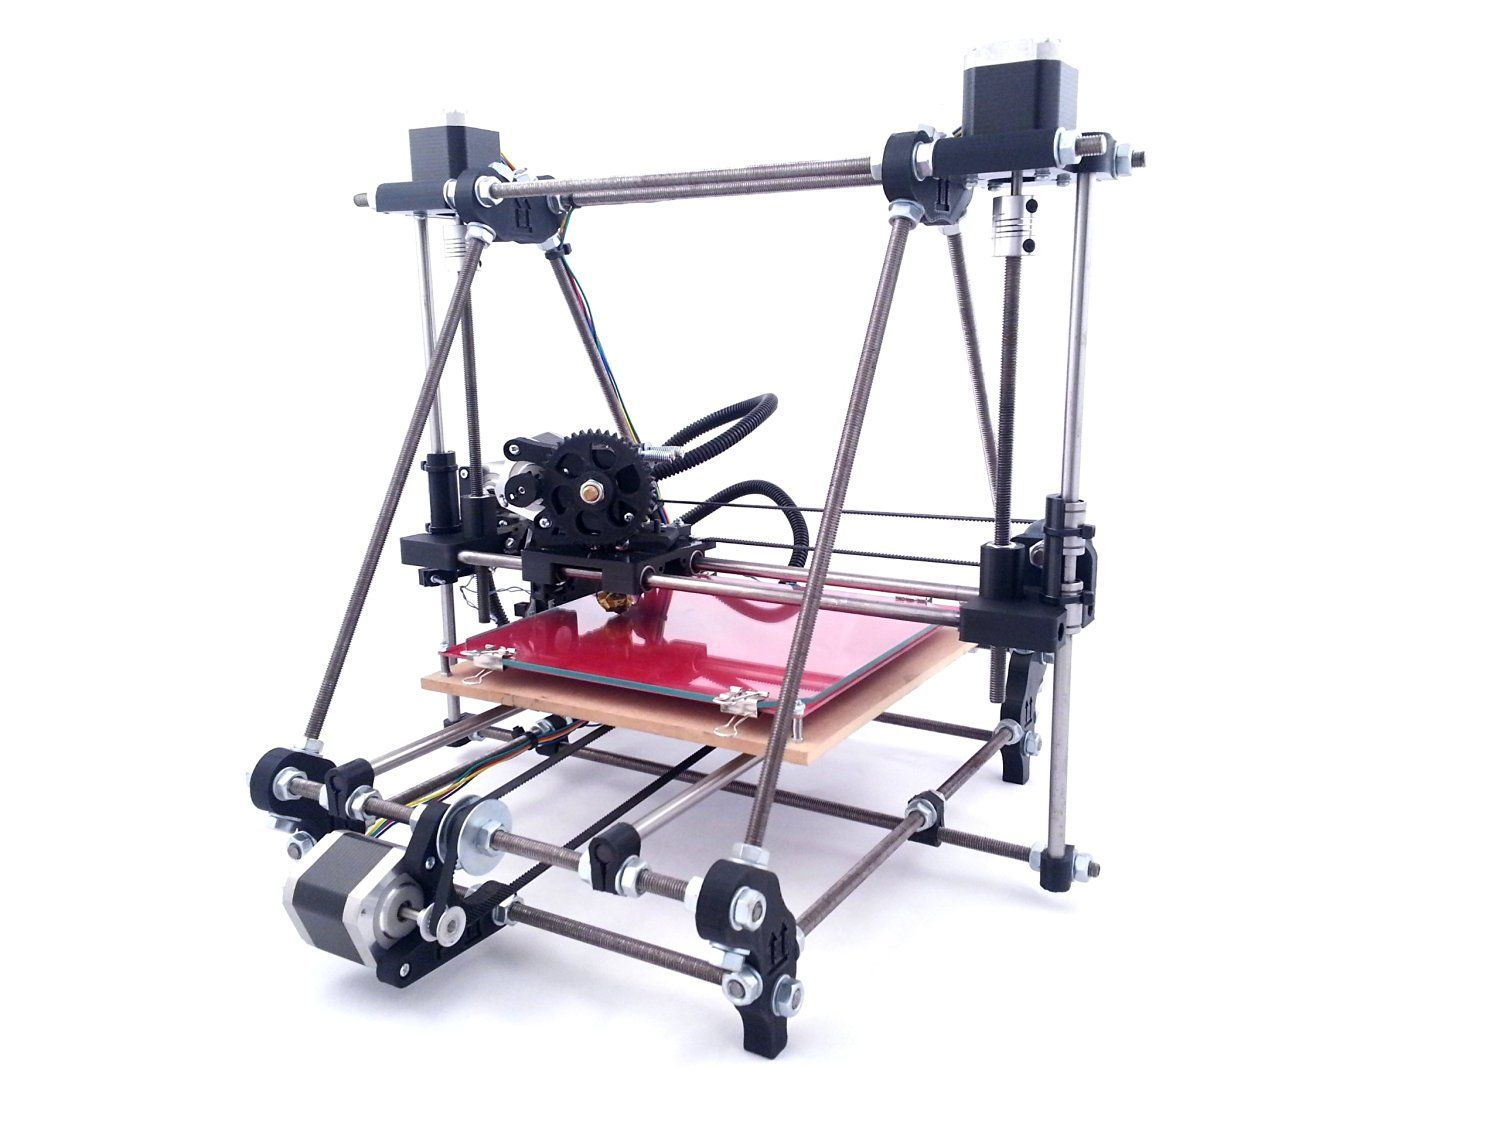 3d printer review | cheap 3d printer | what is the best 3d printer<!--?php…